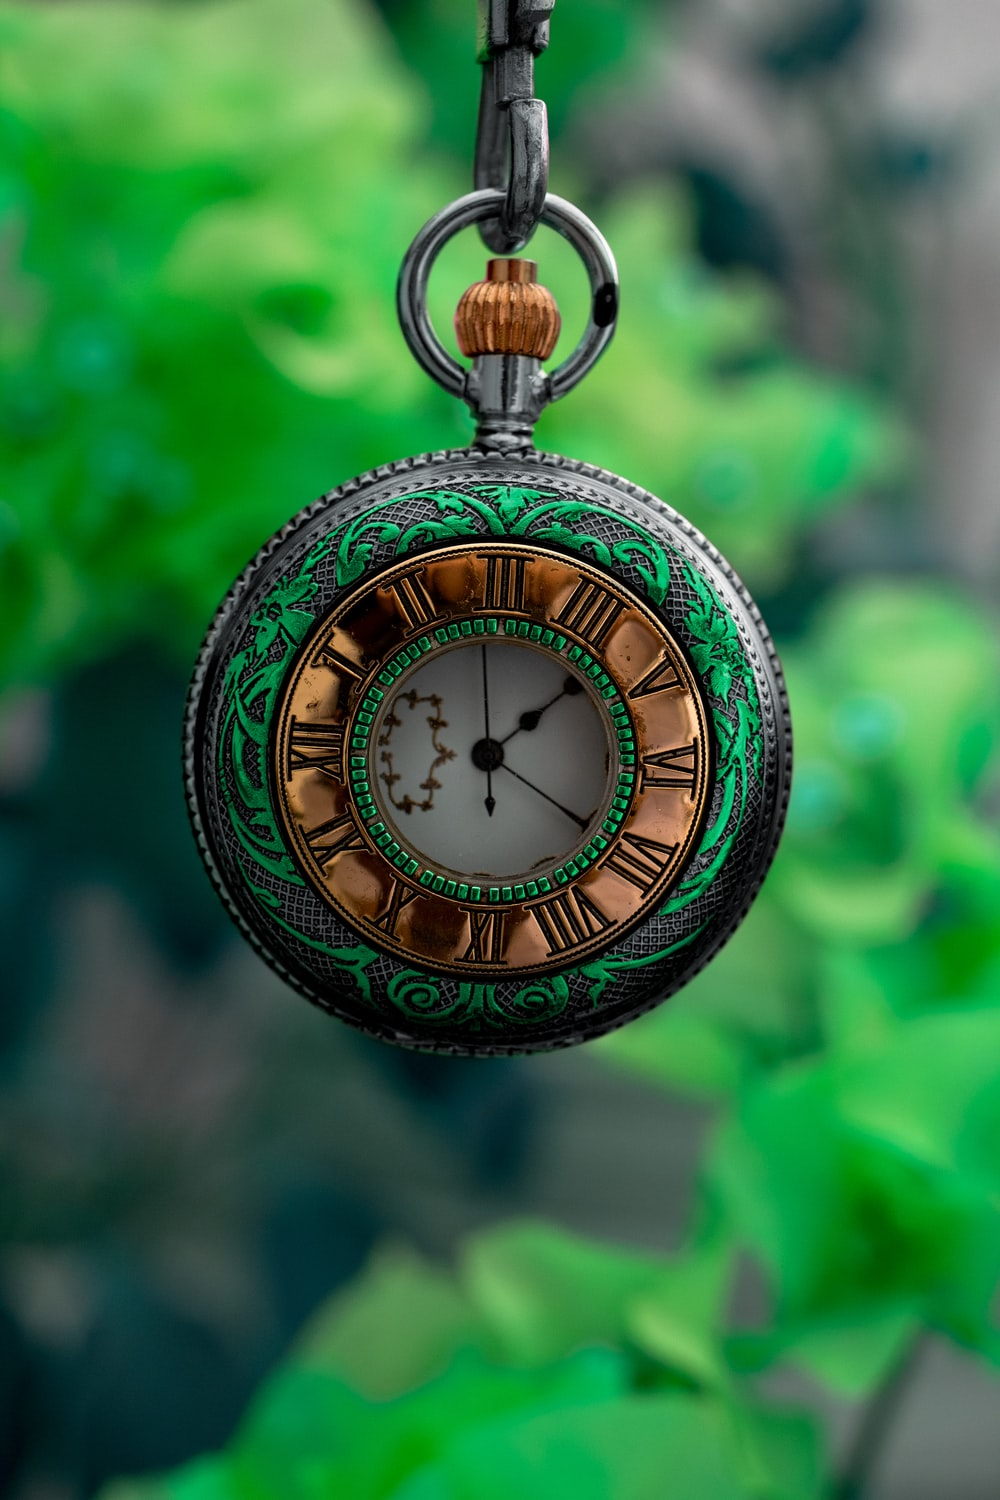 gold and silver pocket watch